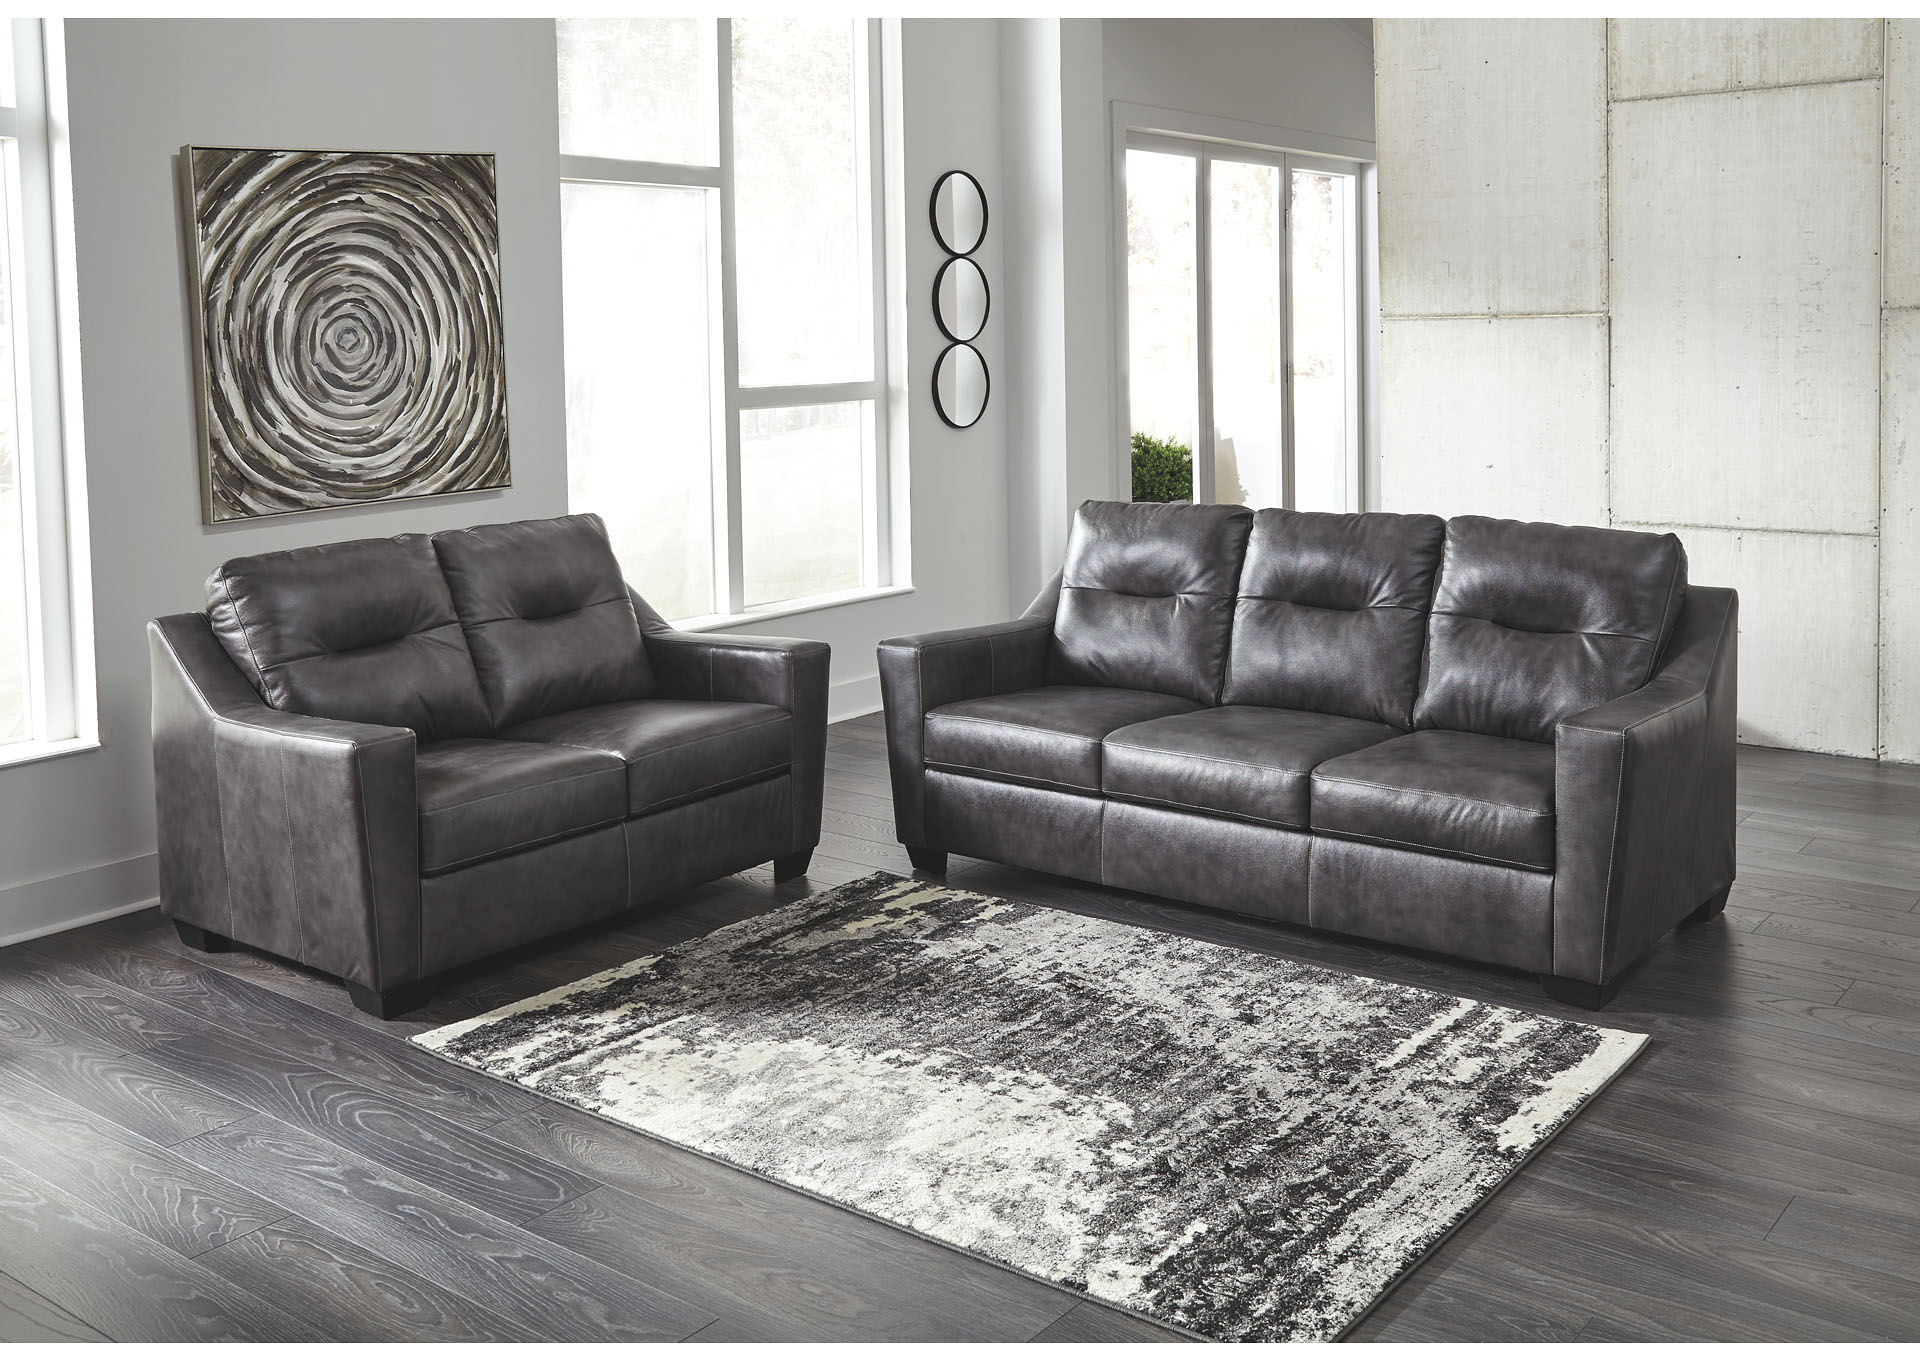 Kensbridge Charcoal Sofa & Loveseat,Signature Design By Ashley